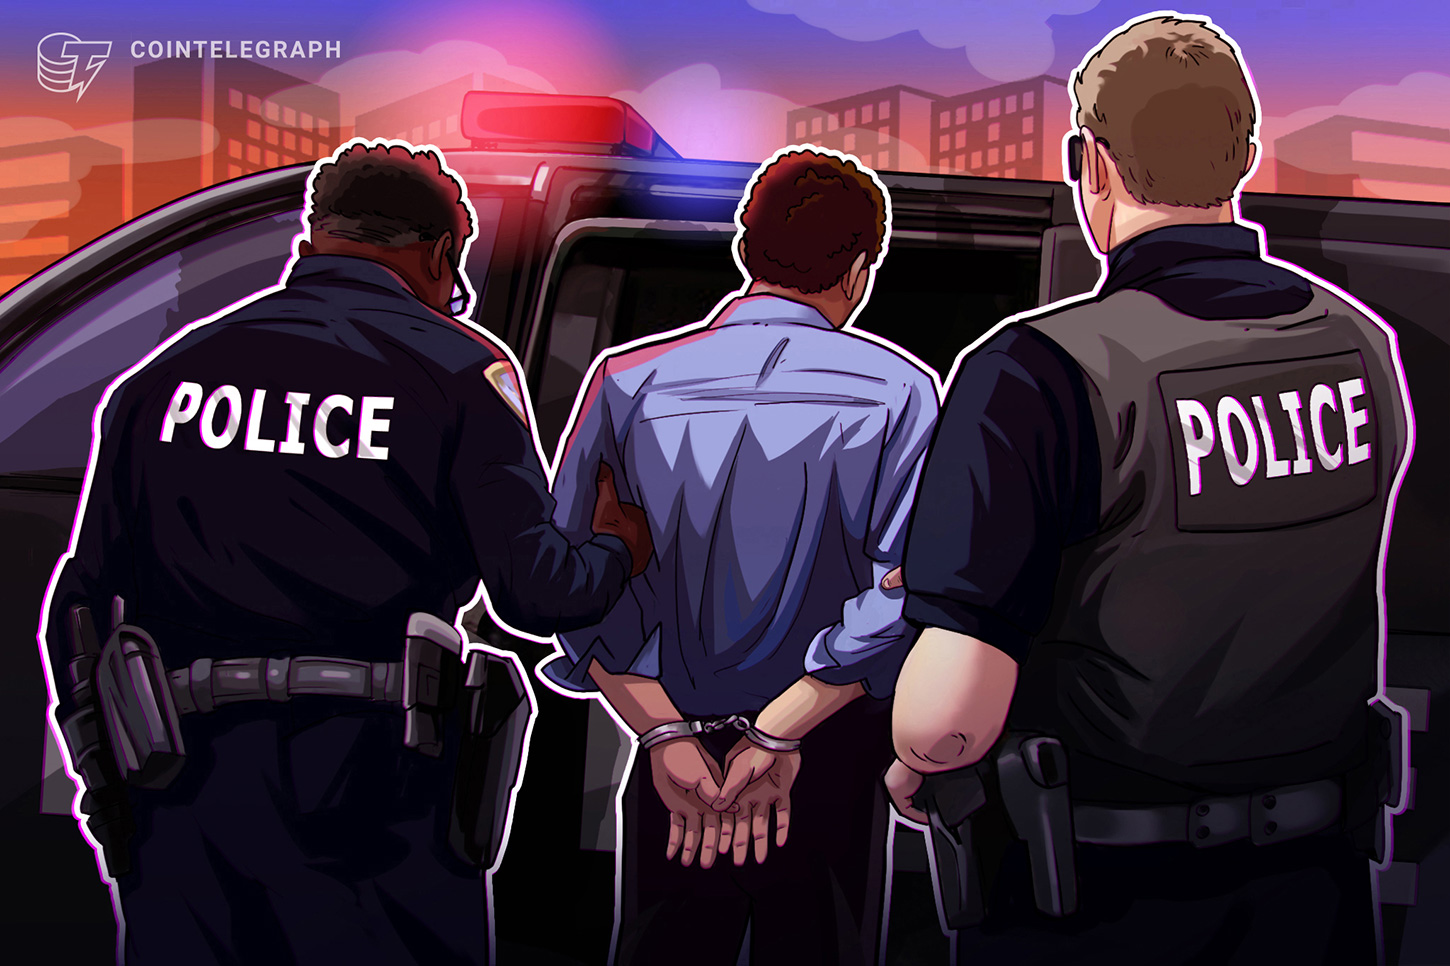 Taiwan police arrest 14 suspects for scamming over 100 crypto investors